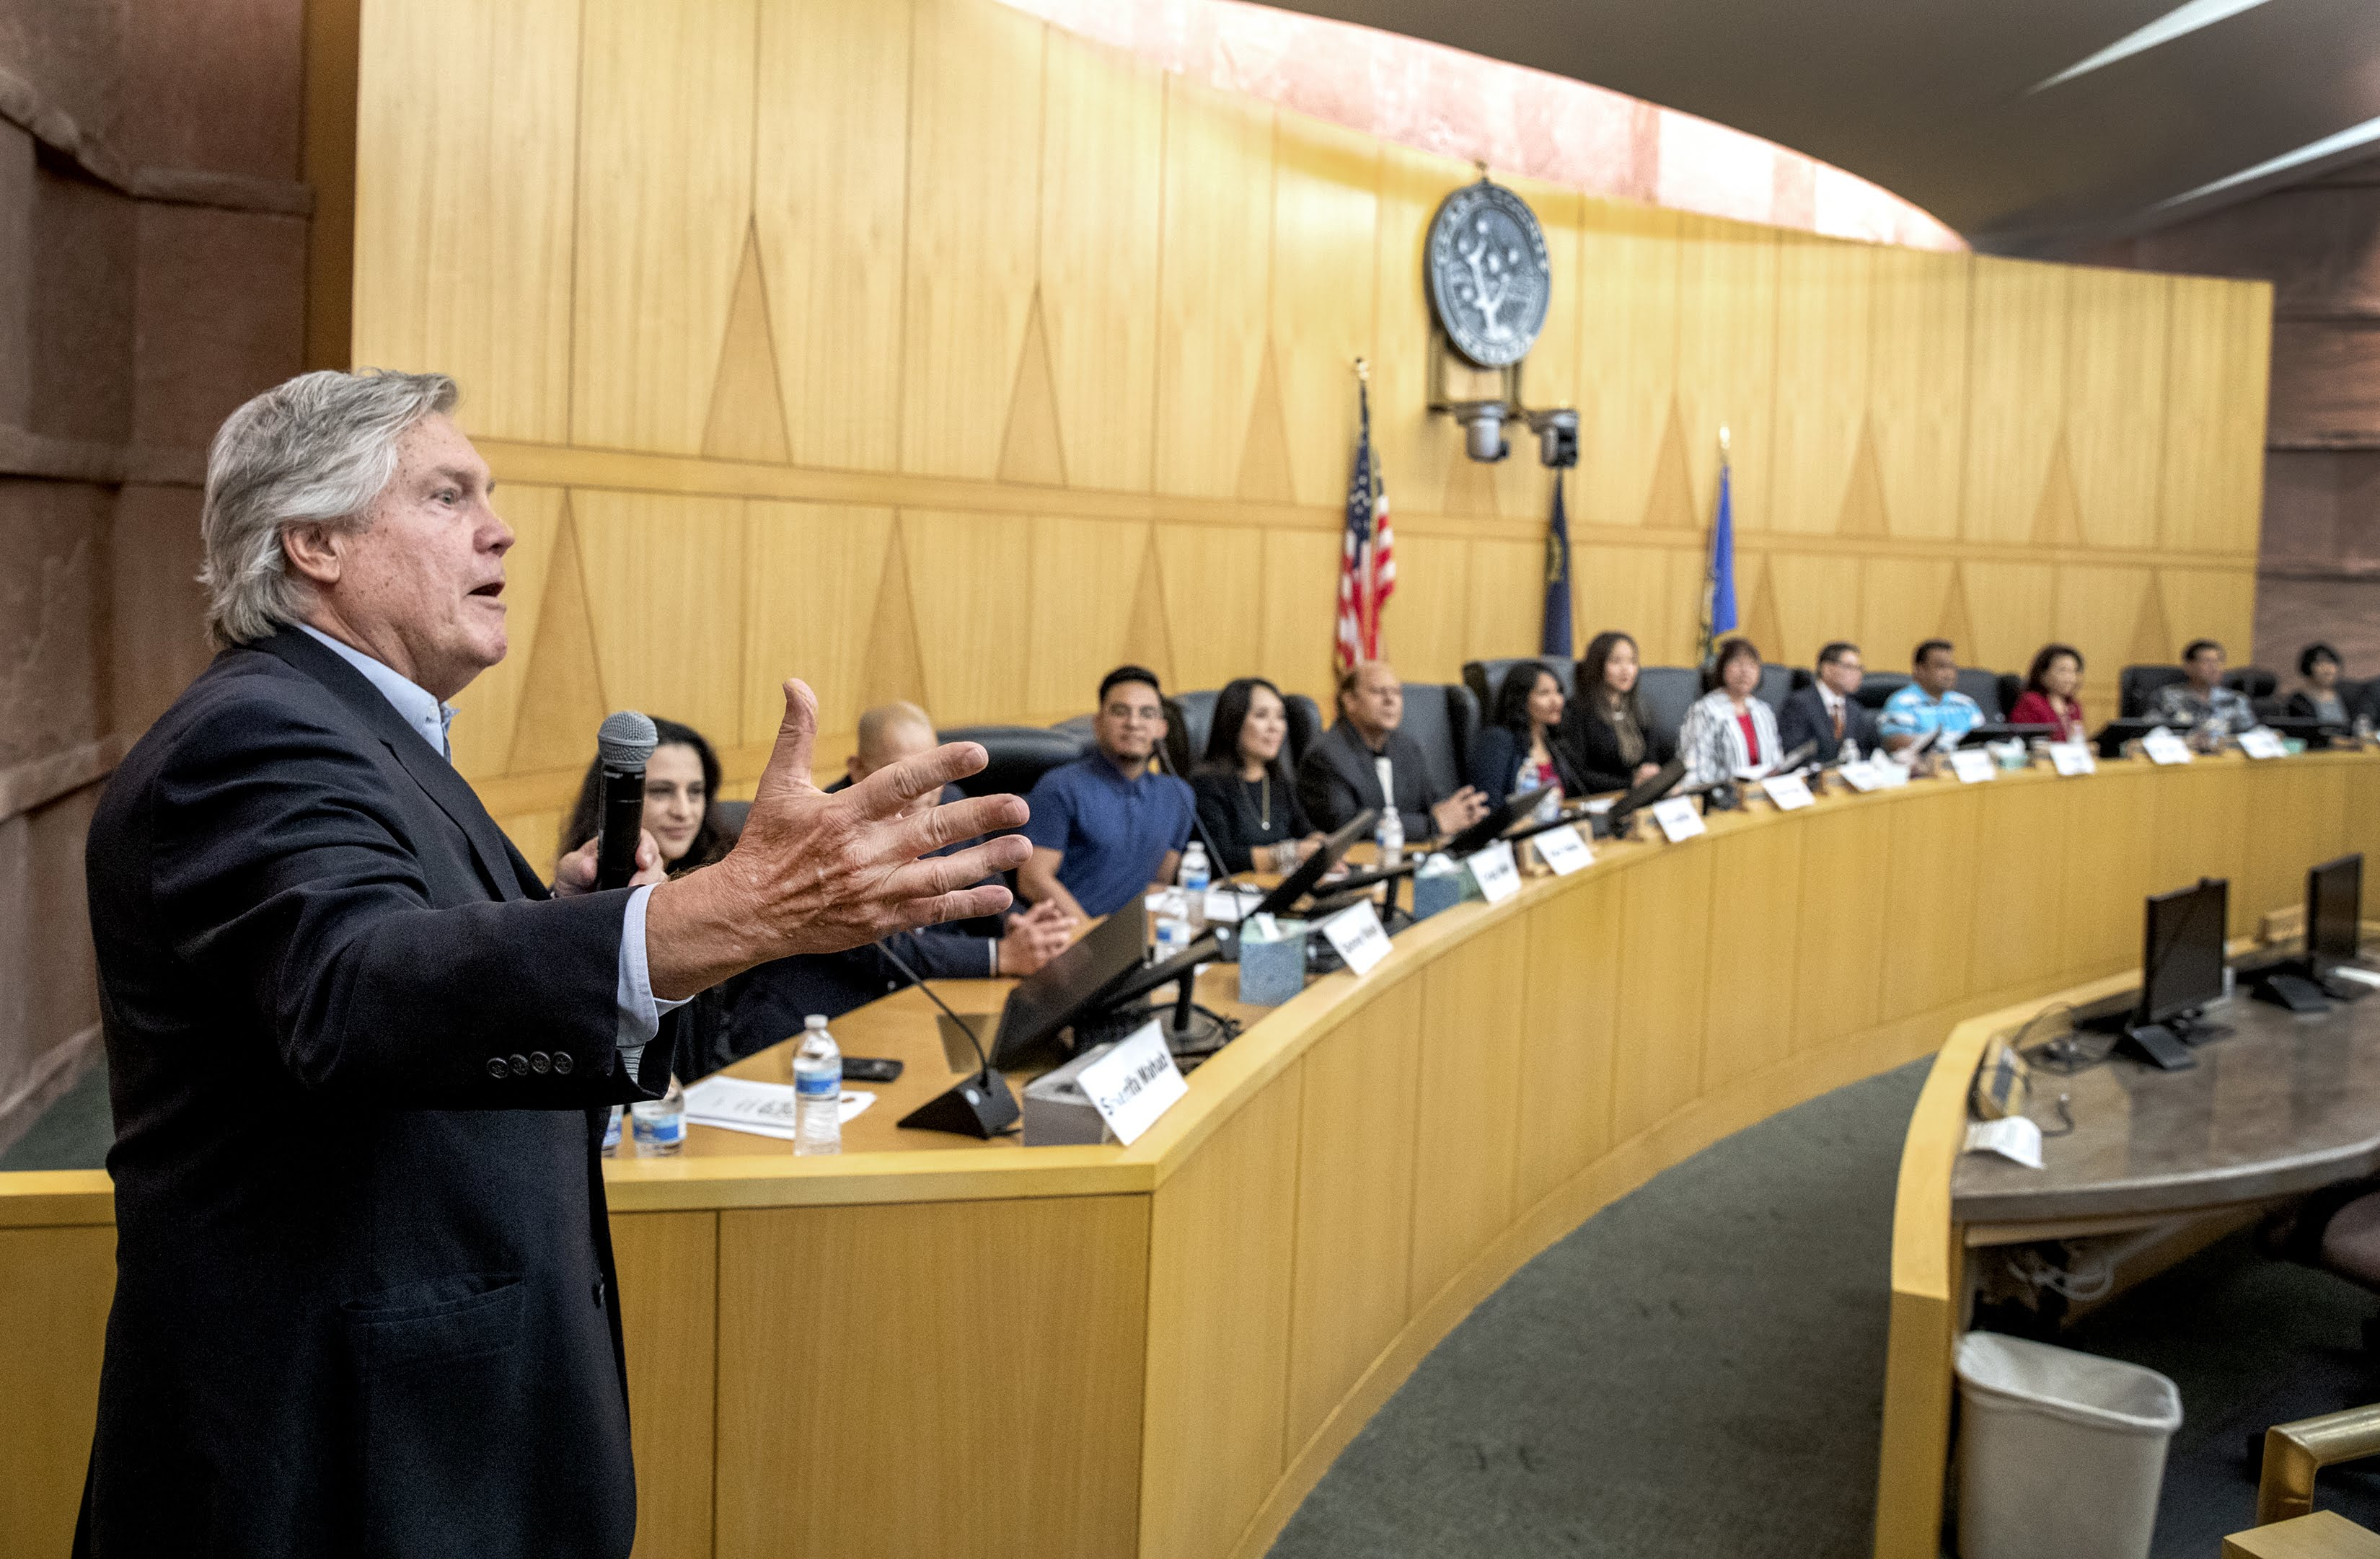 Clark County Commissioner Tick Segerblom speaks during the Asian-American Pacific Islanders Community Commission inaugural meeting at the Commission Chambers of the Clark County Government Center